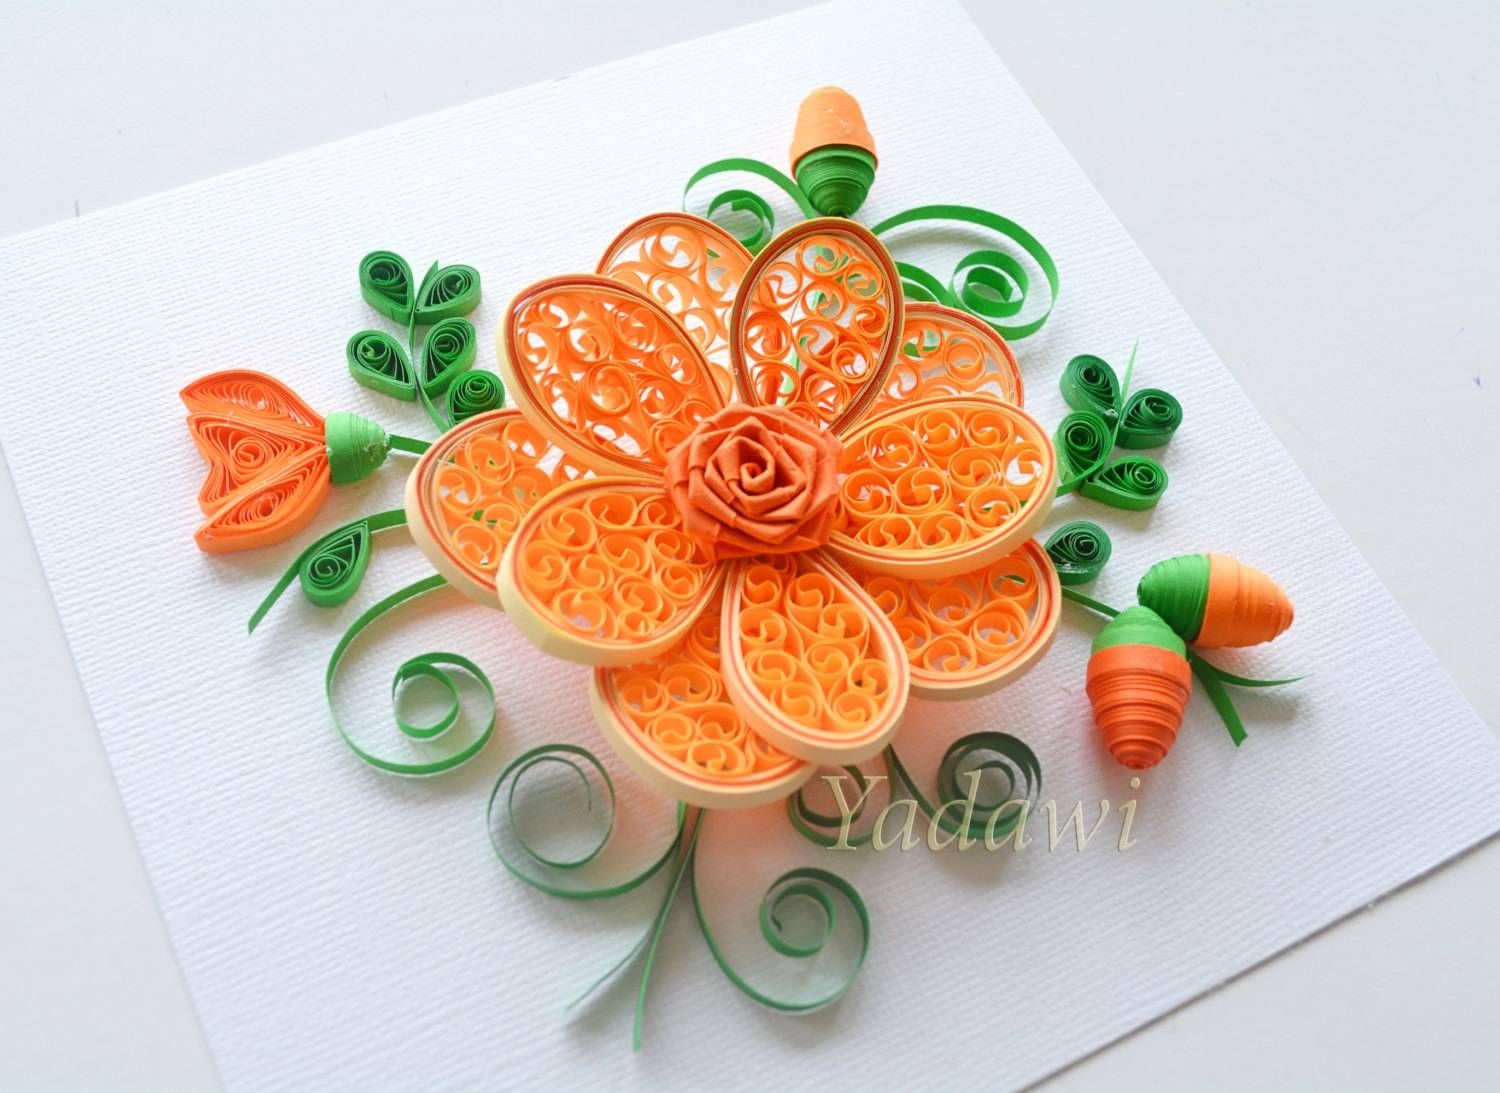 Quilled Paper Art Quilled Flower Paper Wall Art 3D Paper Intended For Newest 3D Wall Art With Paper (View 18 of 20)